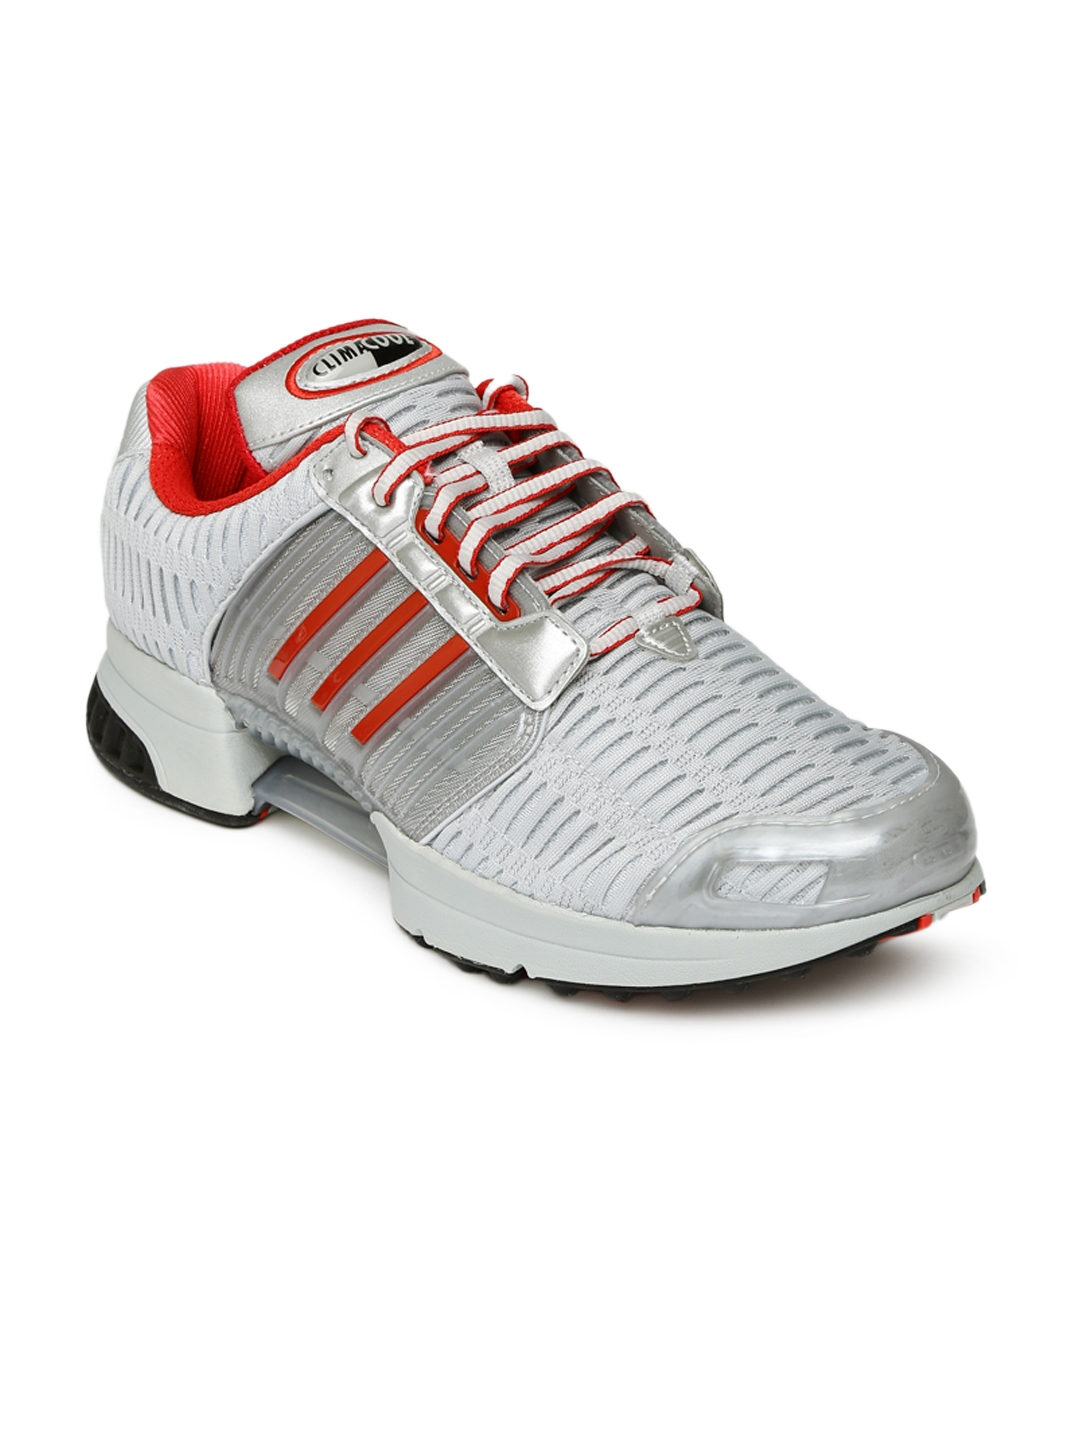 reputable site c0bcf b1818 ADIDAS Originals X Coca-Cola Men Grey Clima Cool 1 Running Shoes